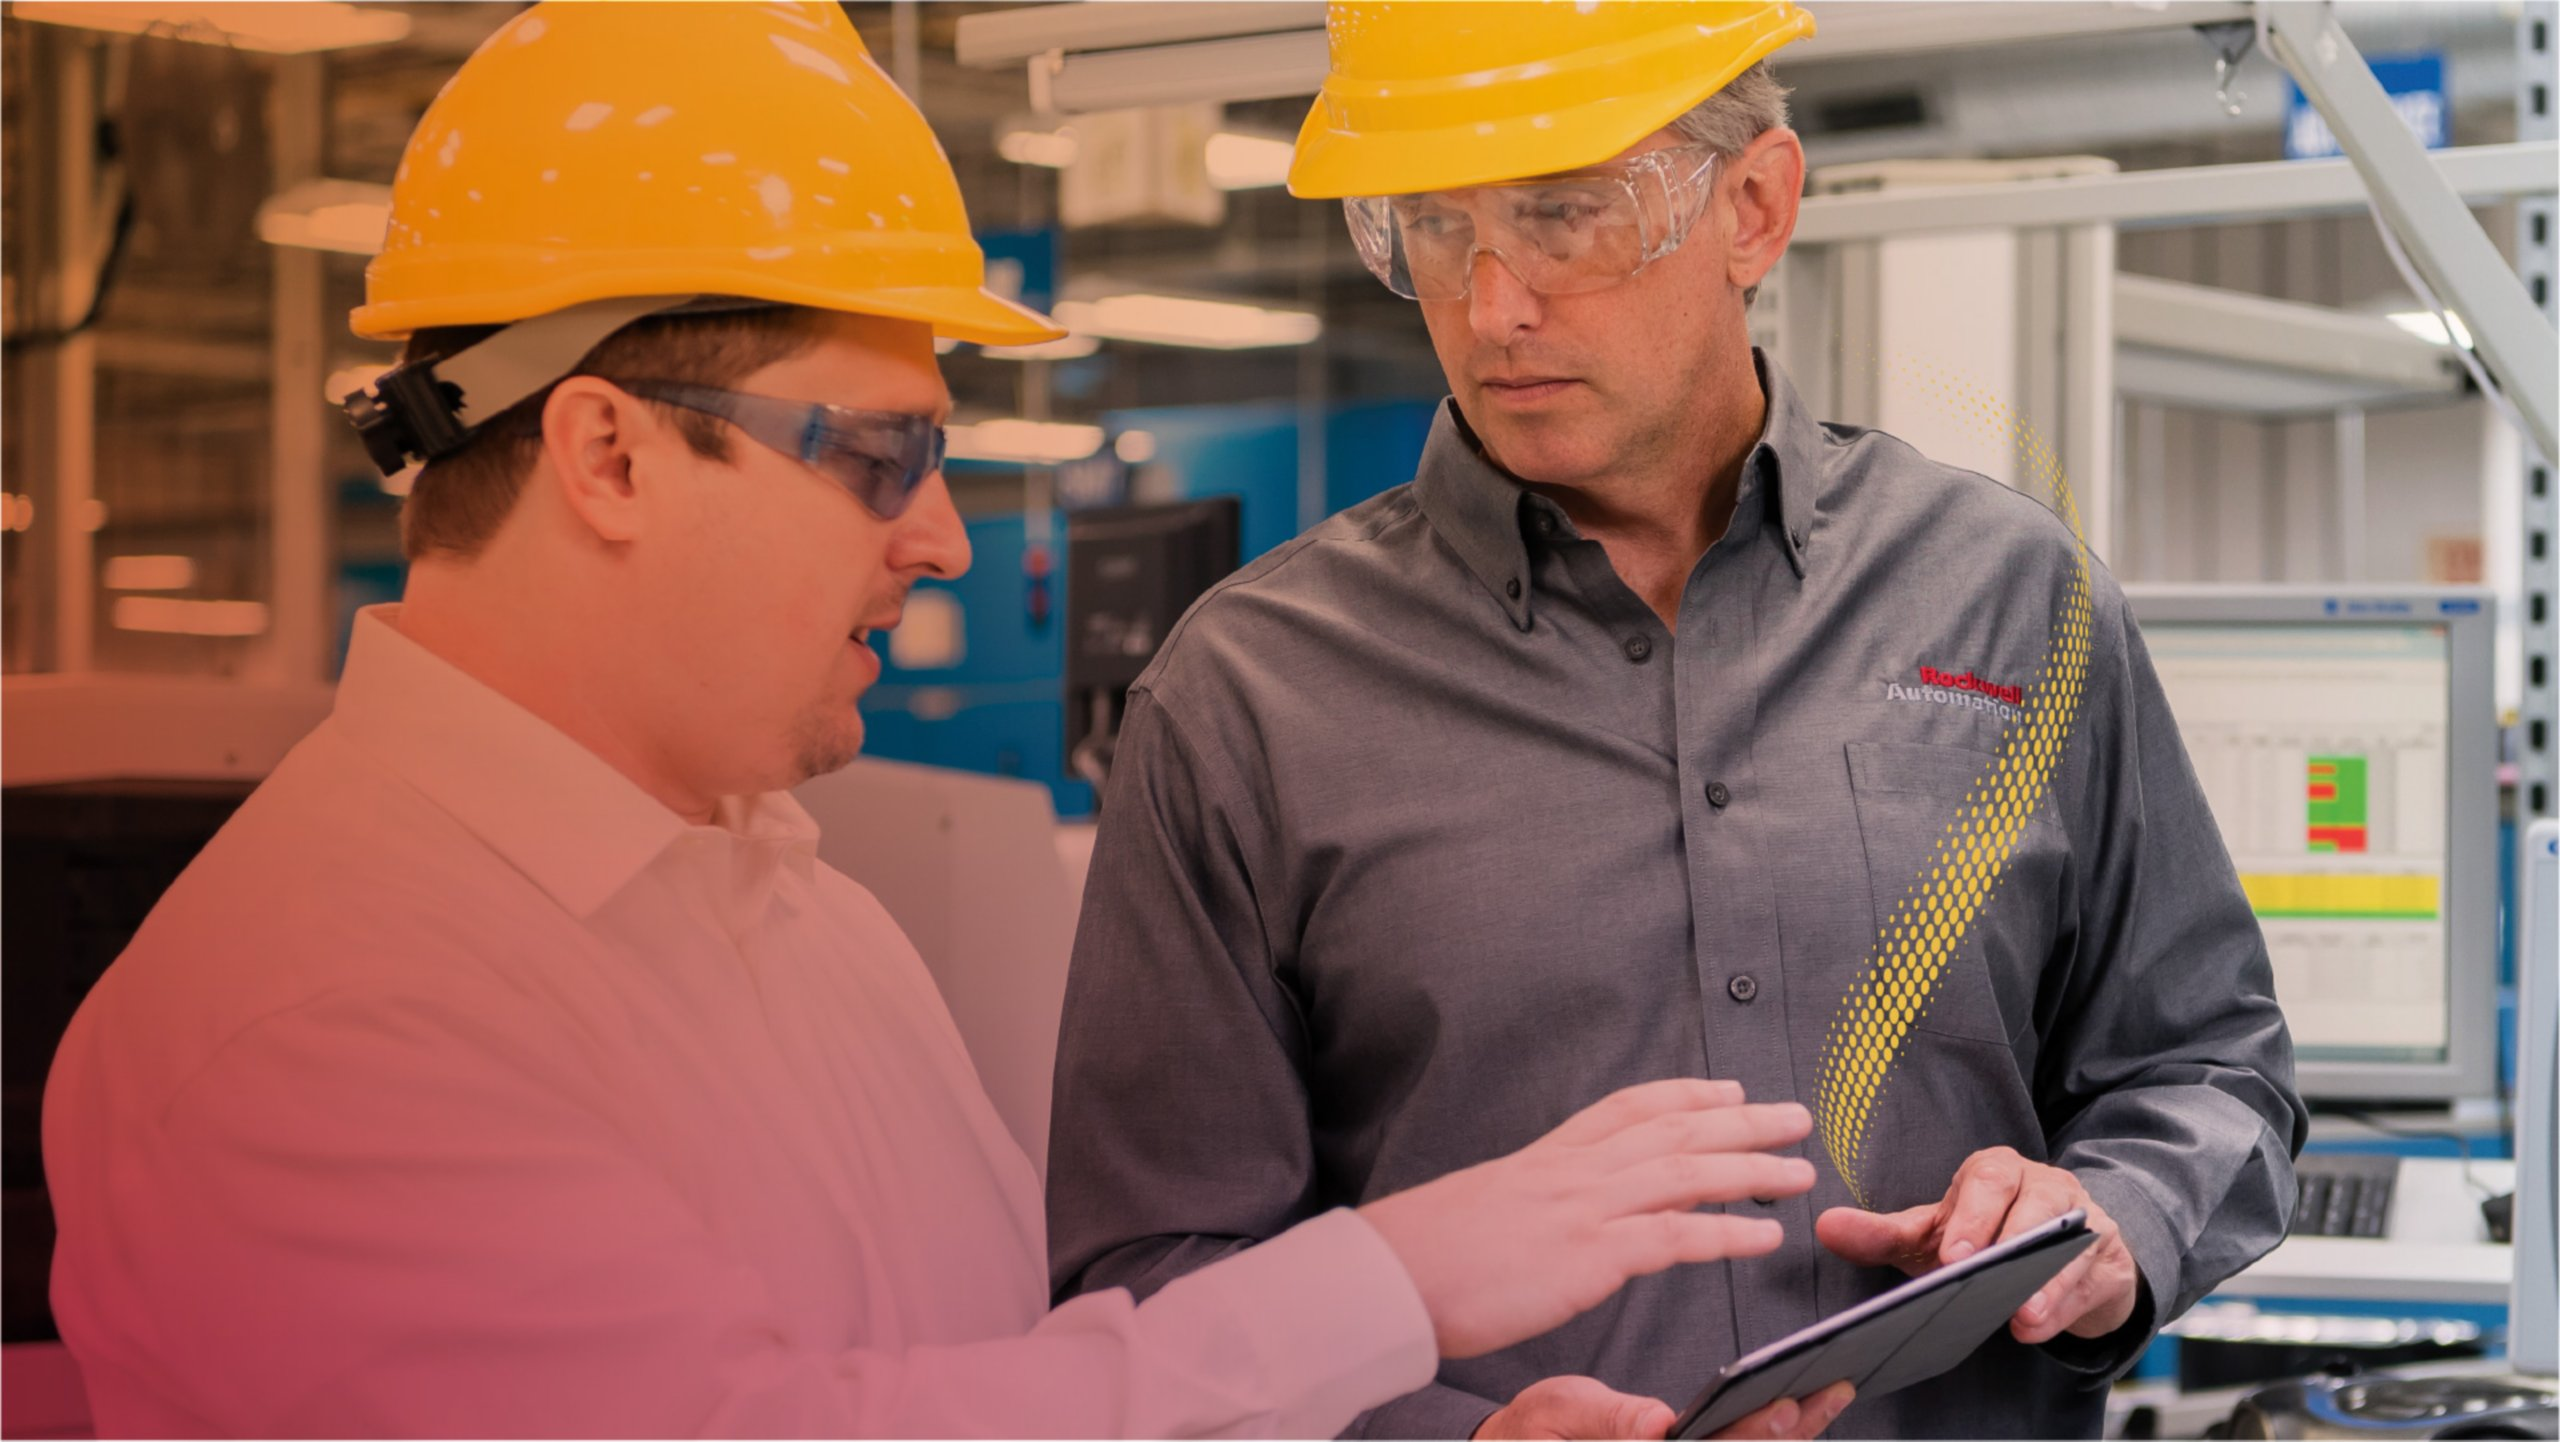 Safety solutions webinar playlist features the top safety solution sessions from Automation Fair® At Home.